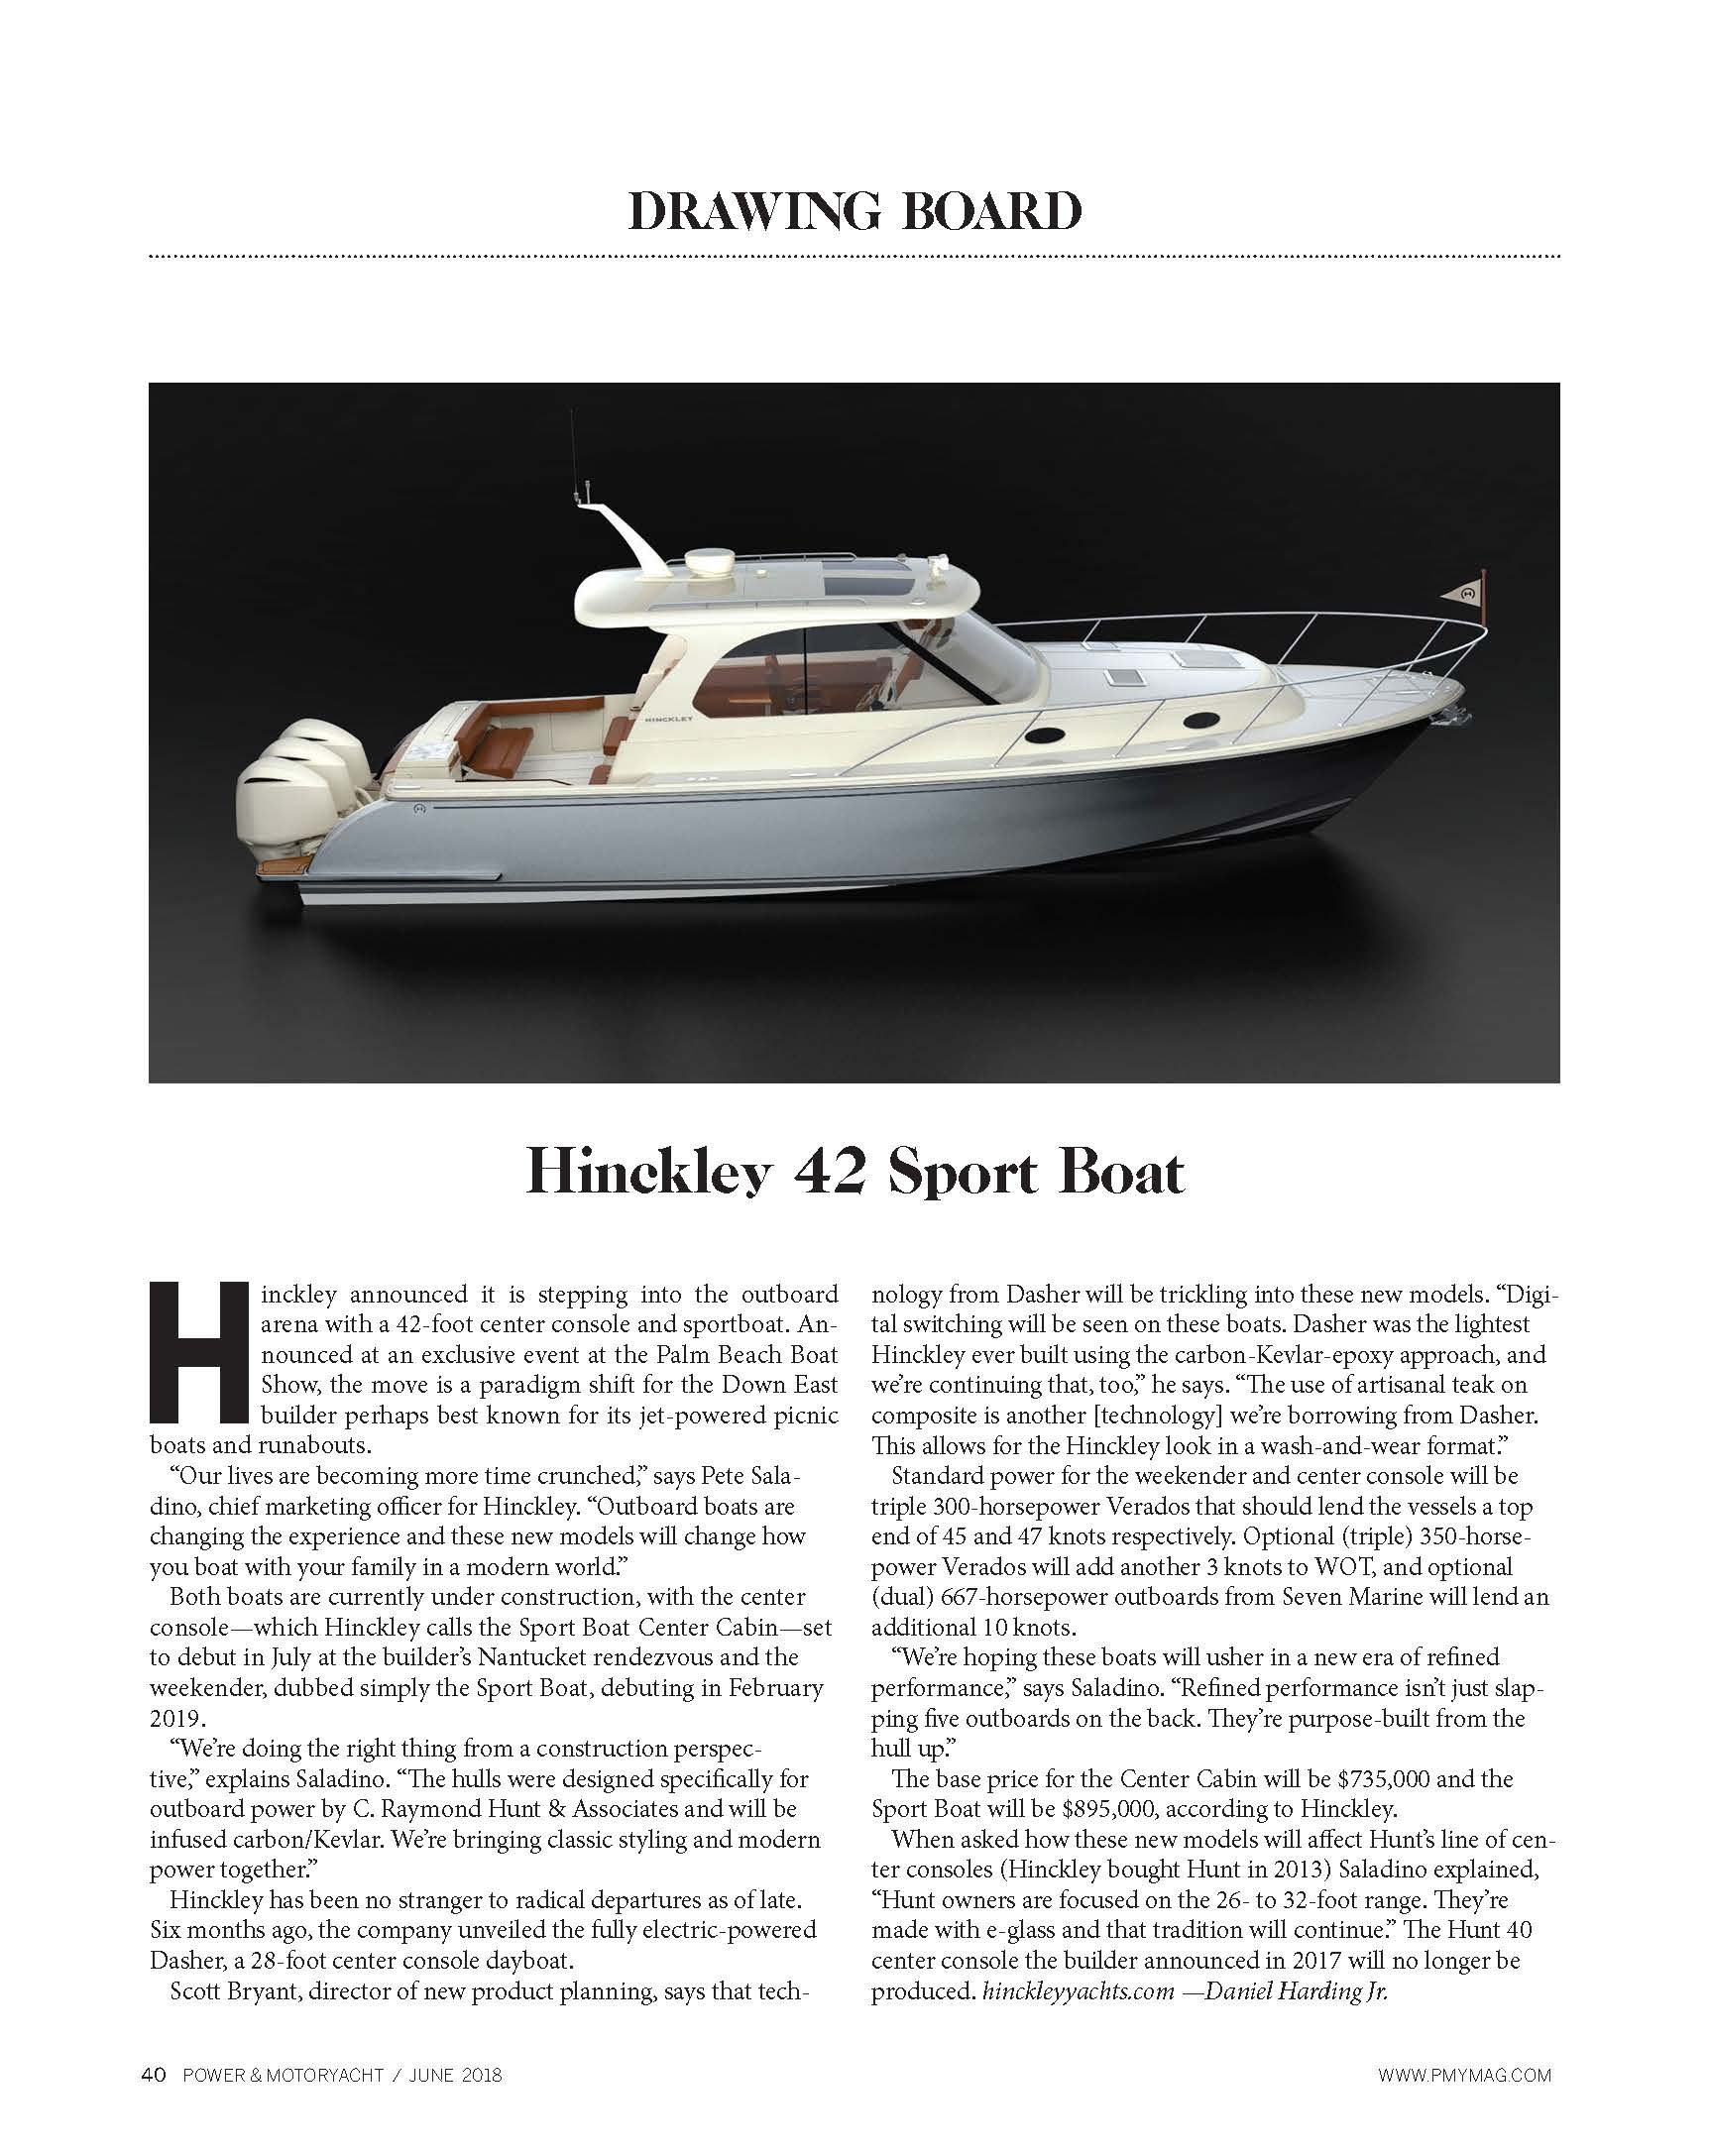 Hinckley Sport Boat Featured in Power & Motoryacht